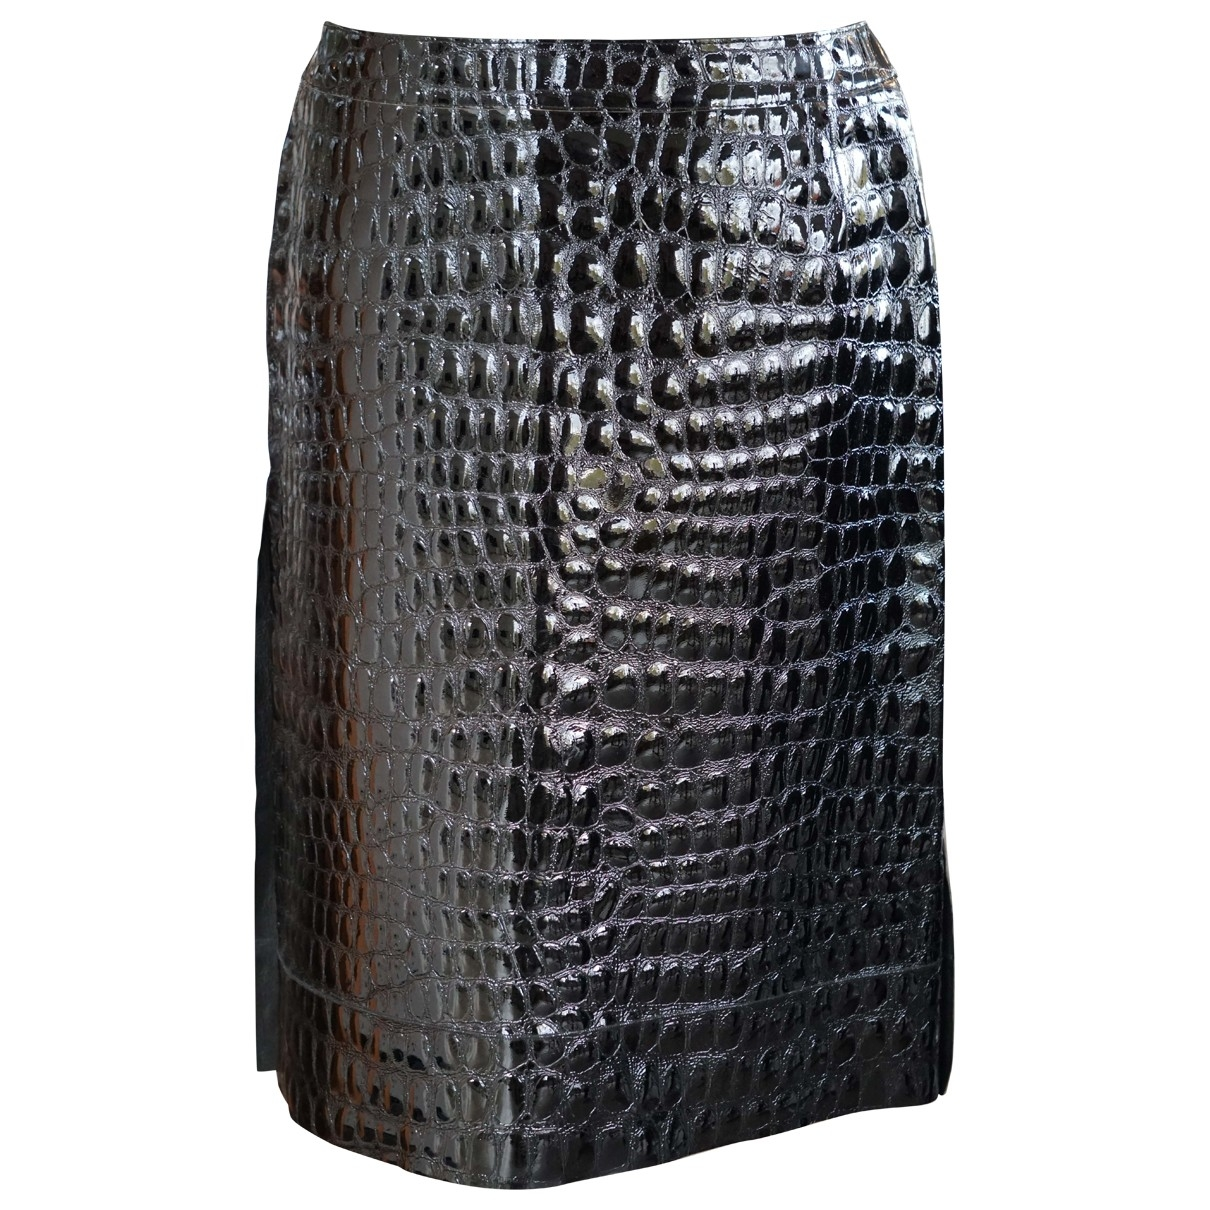 Marni \N Black Patent leather skirt for Women 42 IT